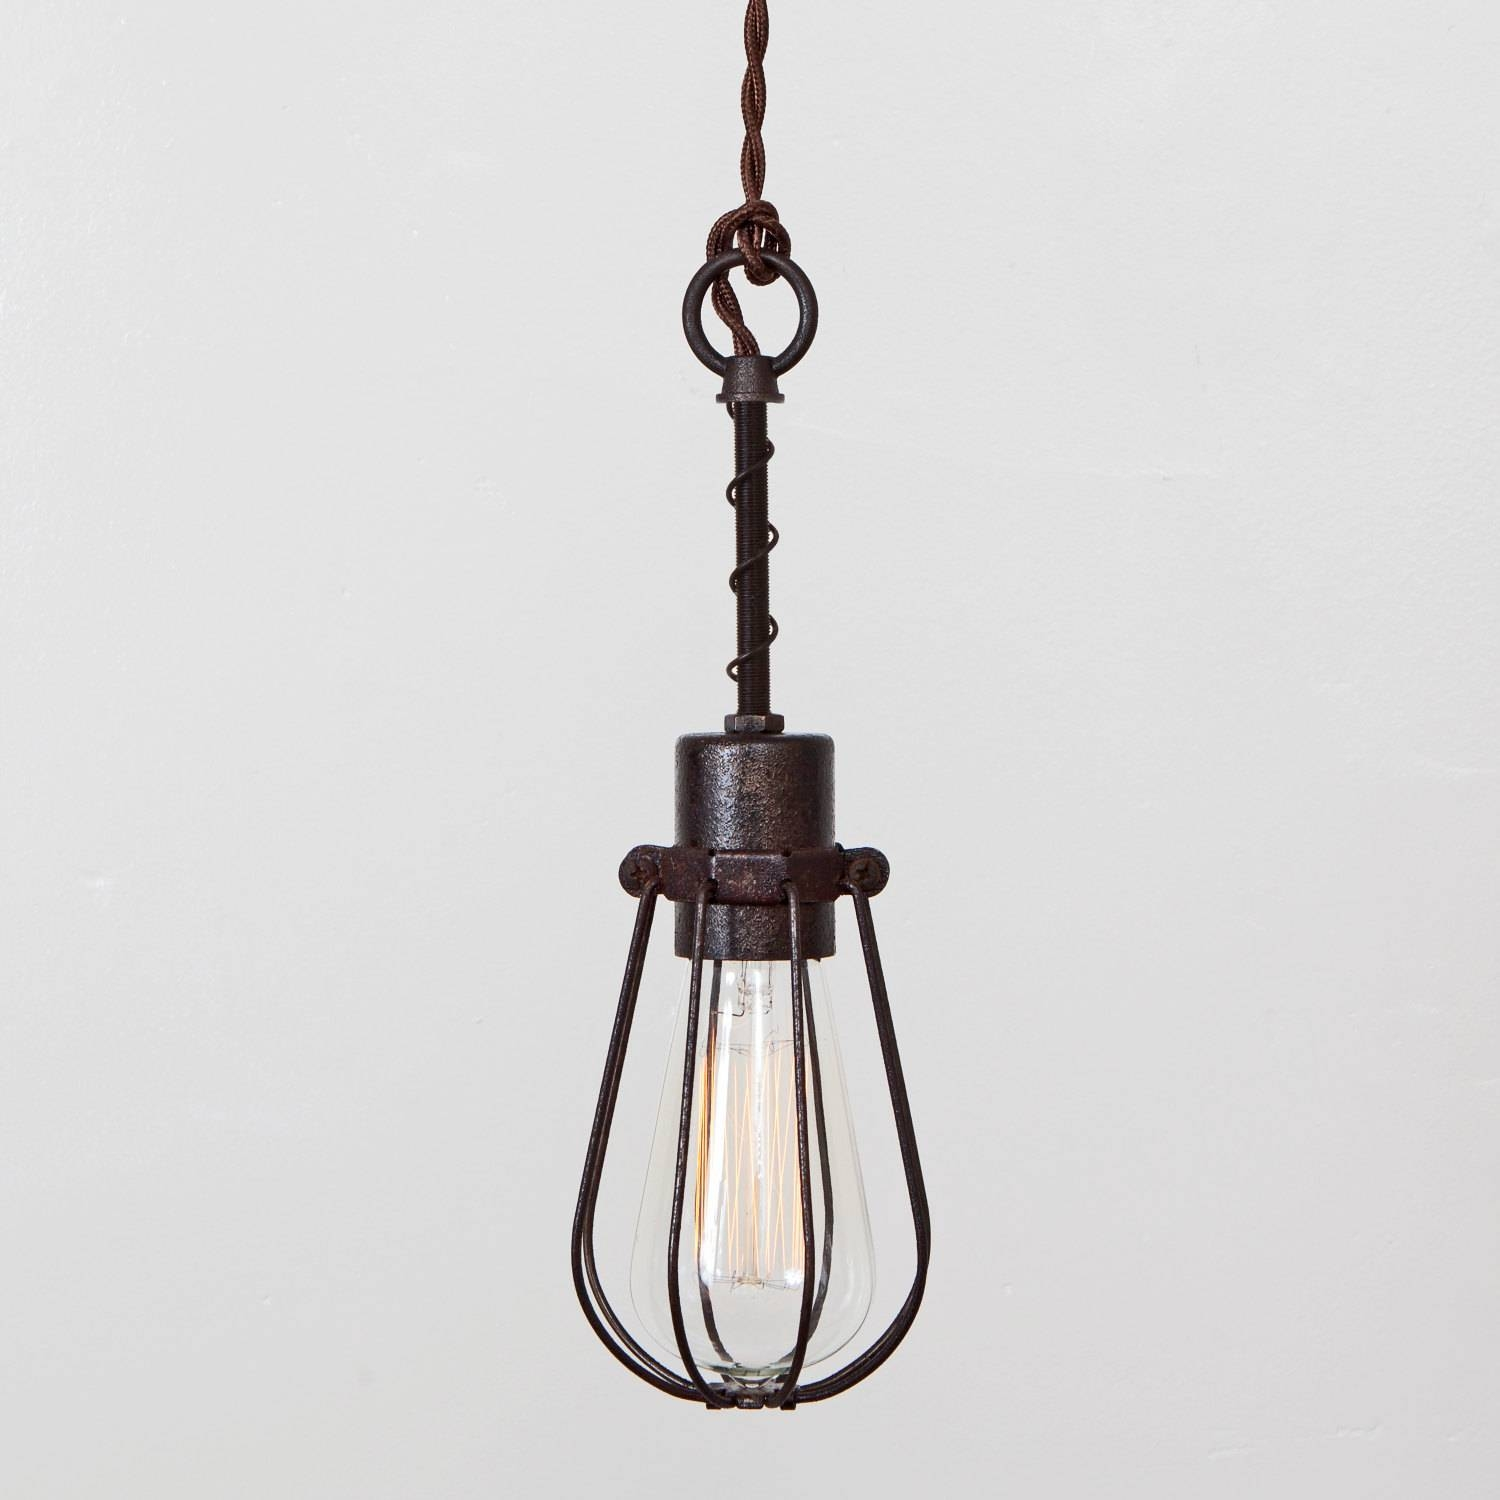 Plug In Hanging Pendant Lights - Baby-Exit pertaining to Plugin Pendant Lights (Image 11 of 15)